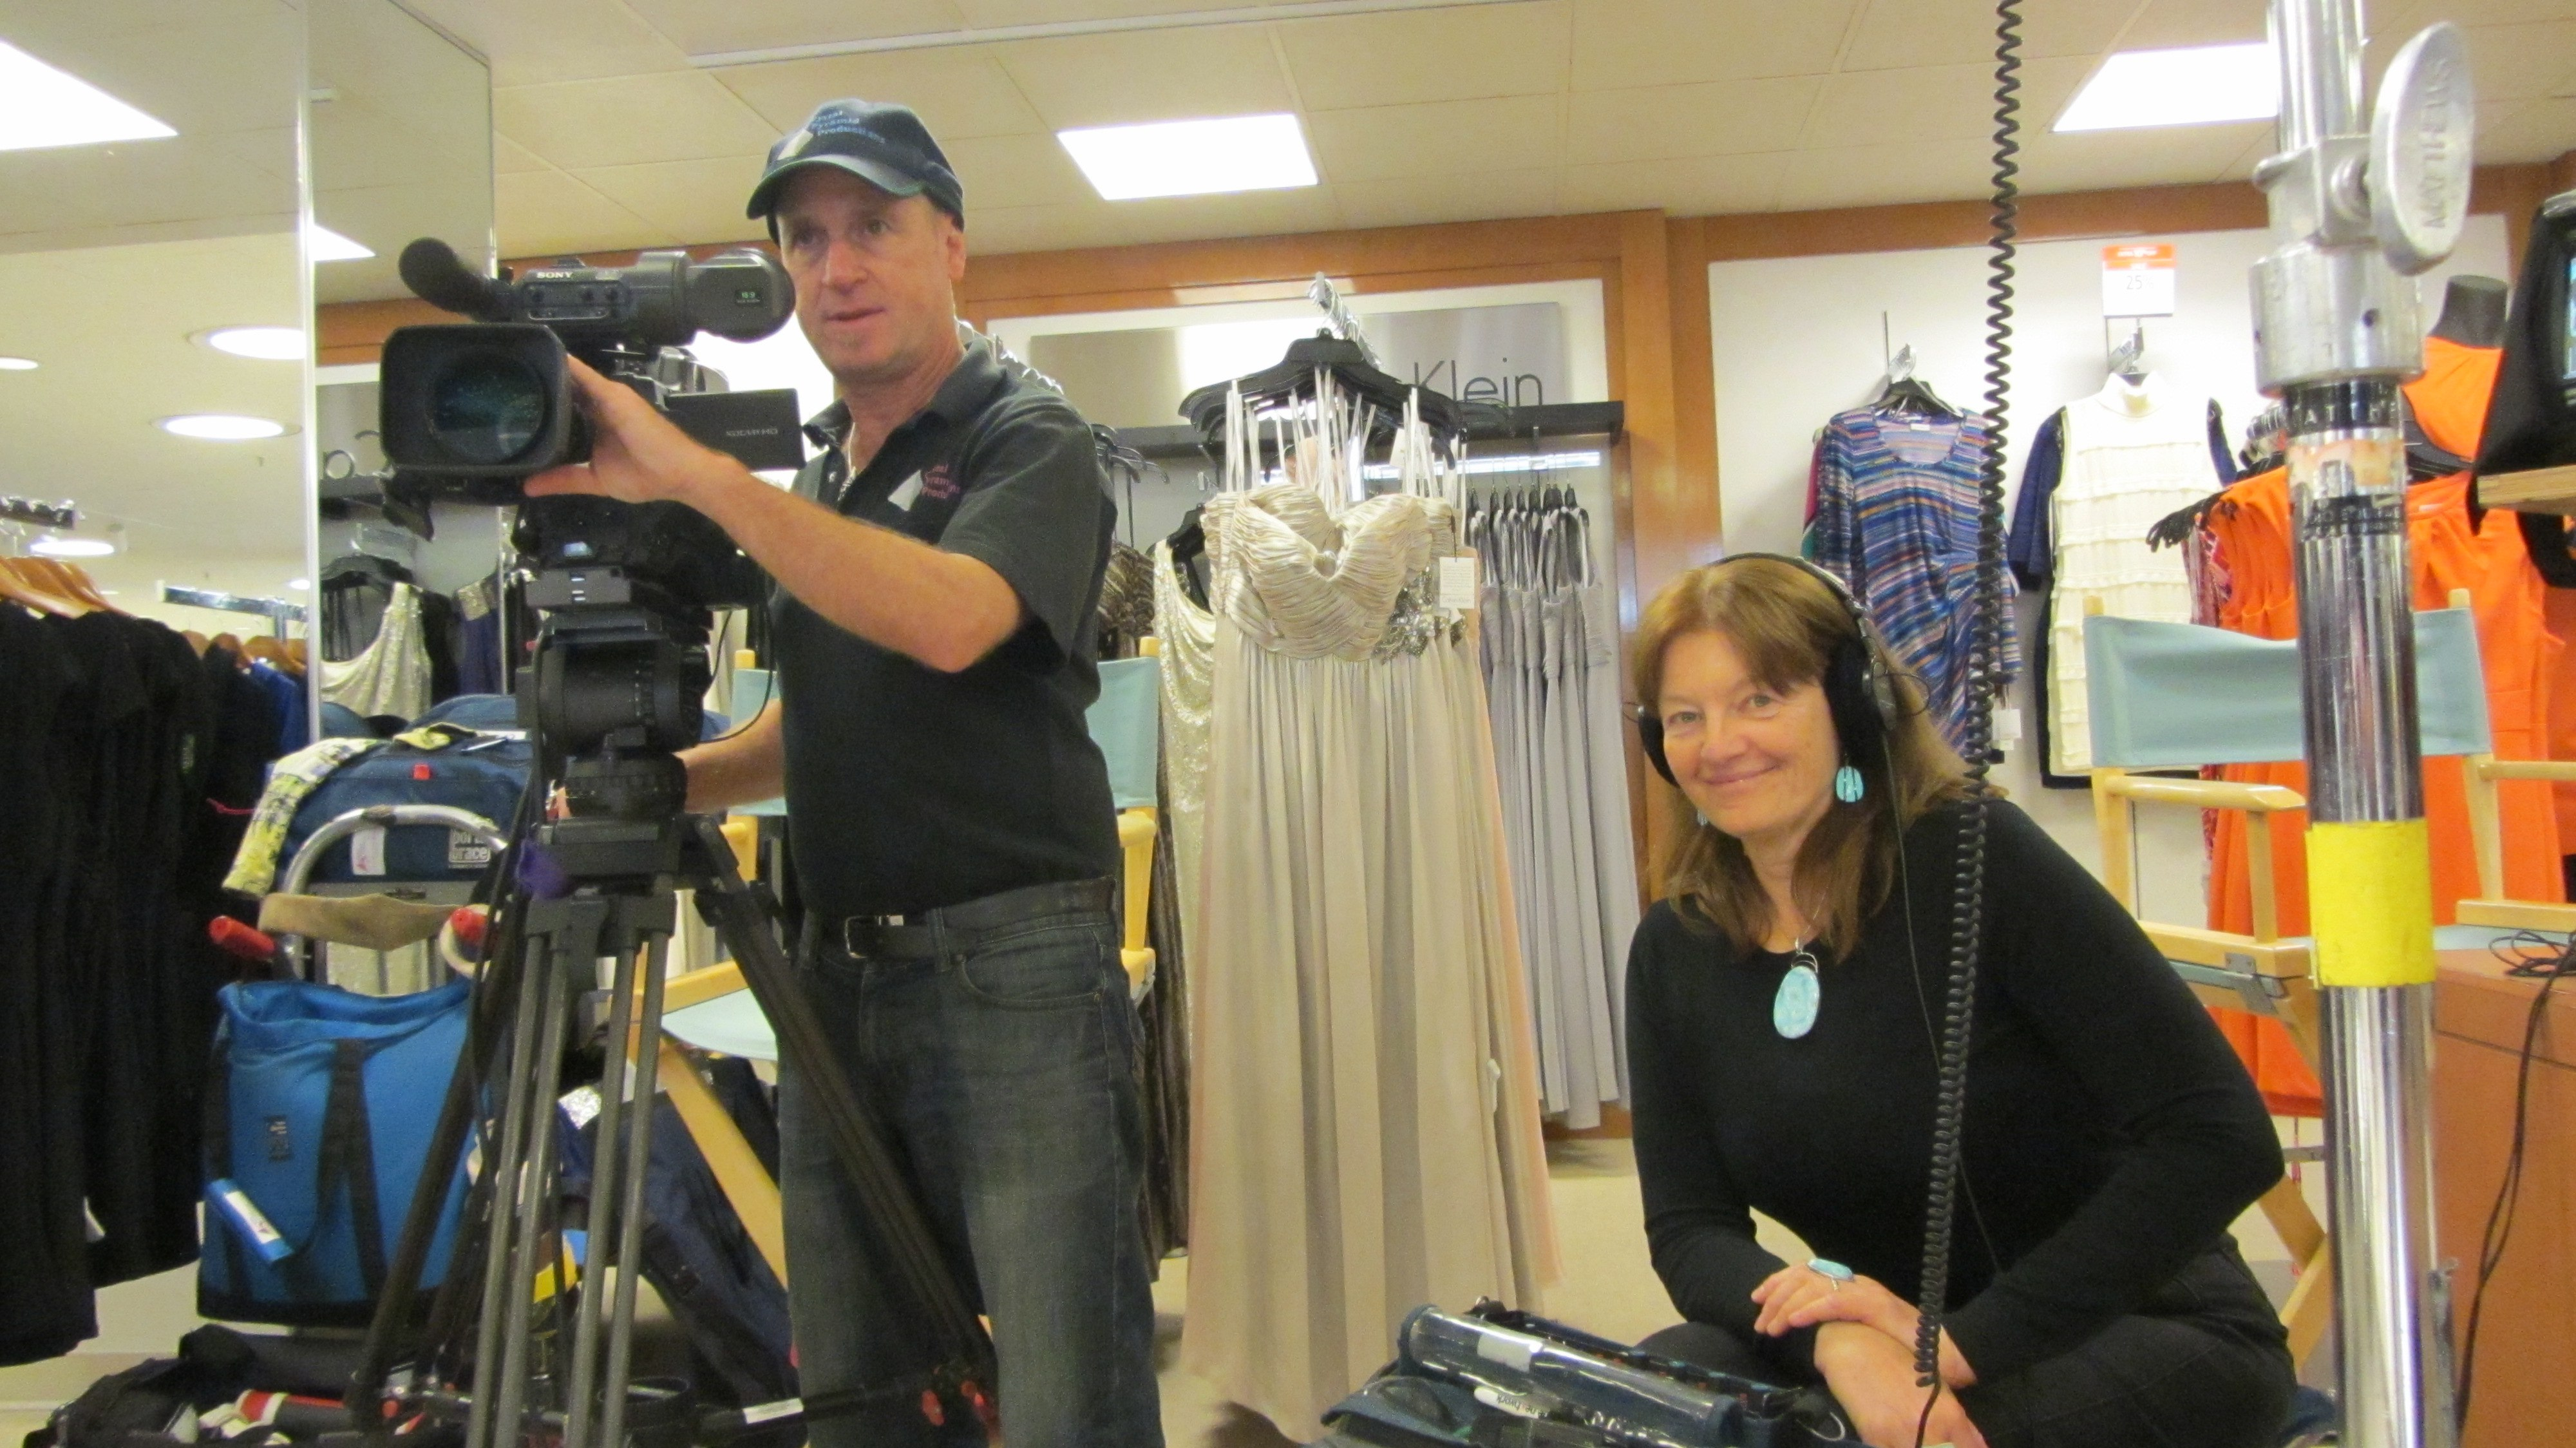 Mark Schulze and Patty Mooney Video Producers at Macys Shoot